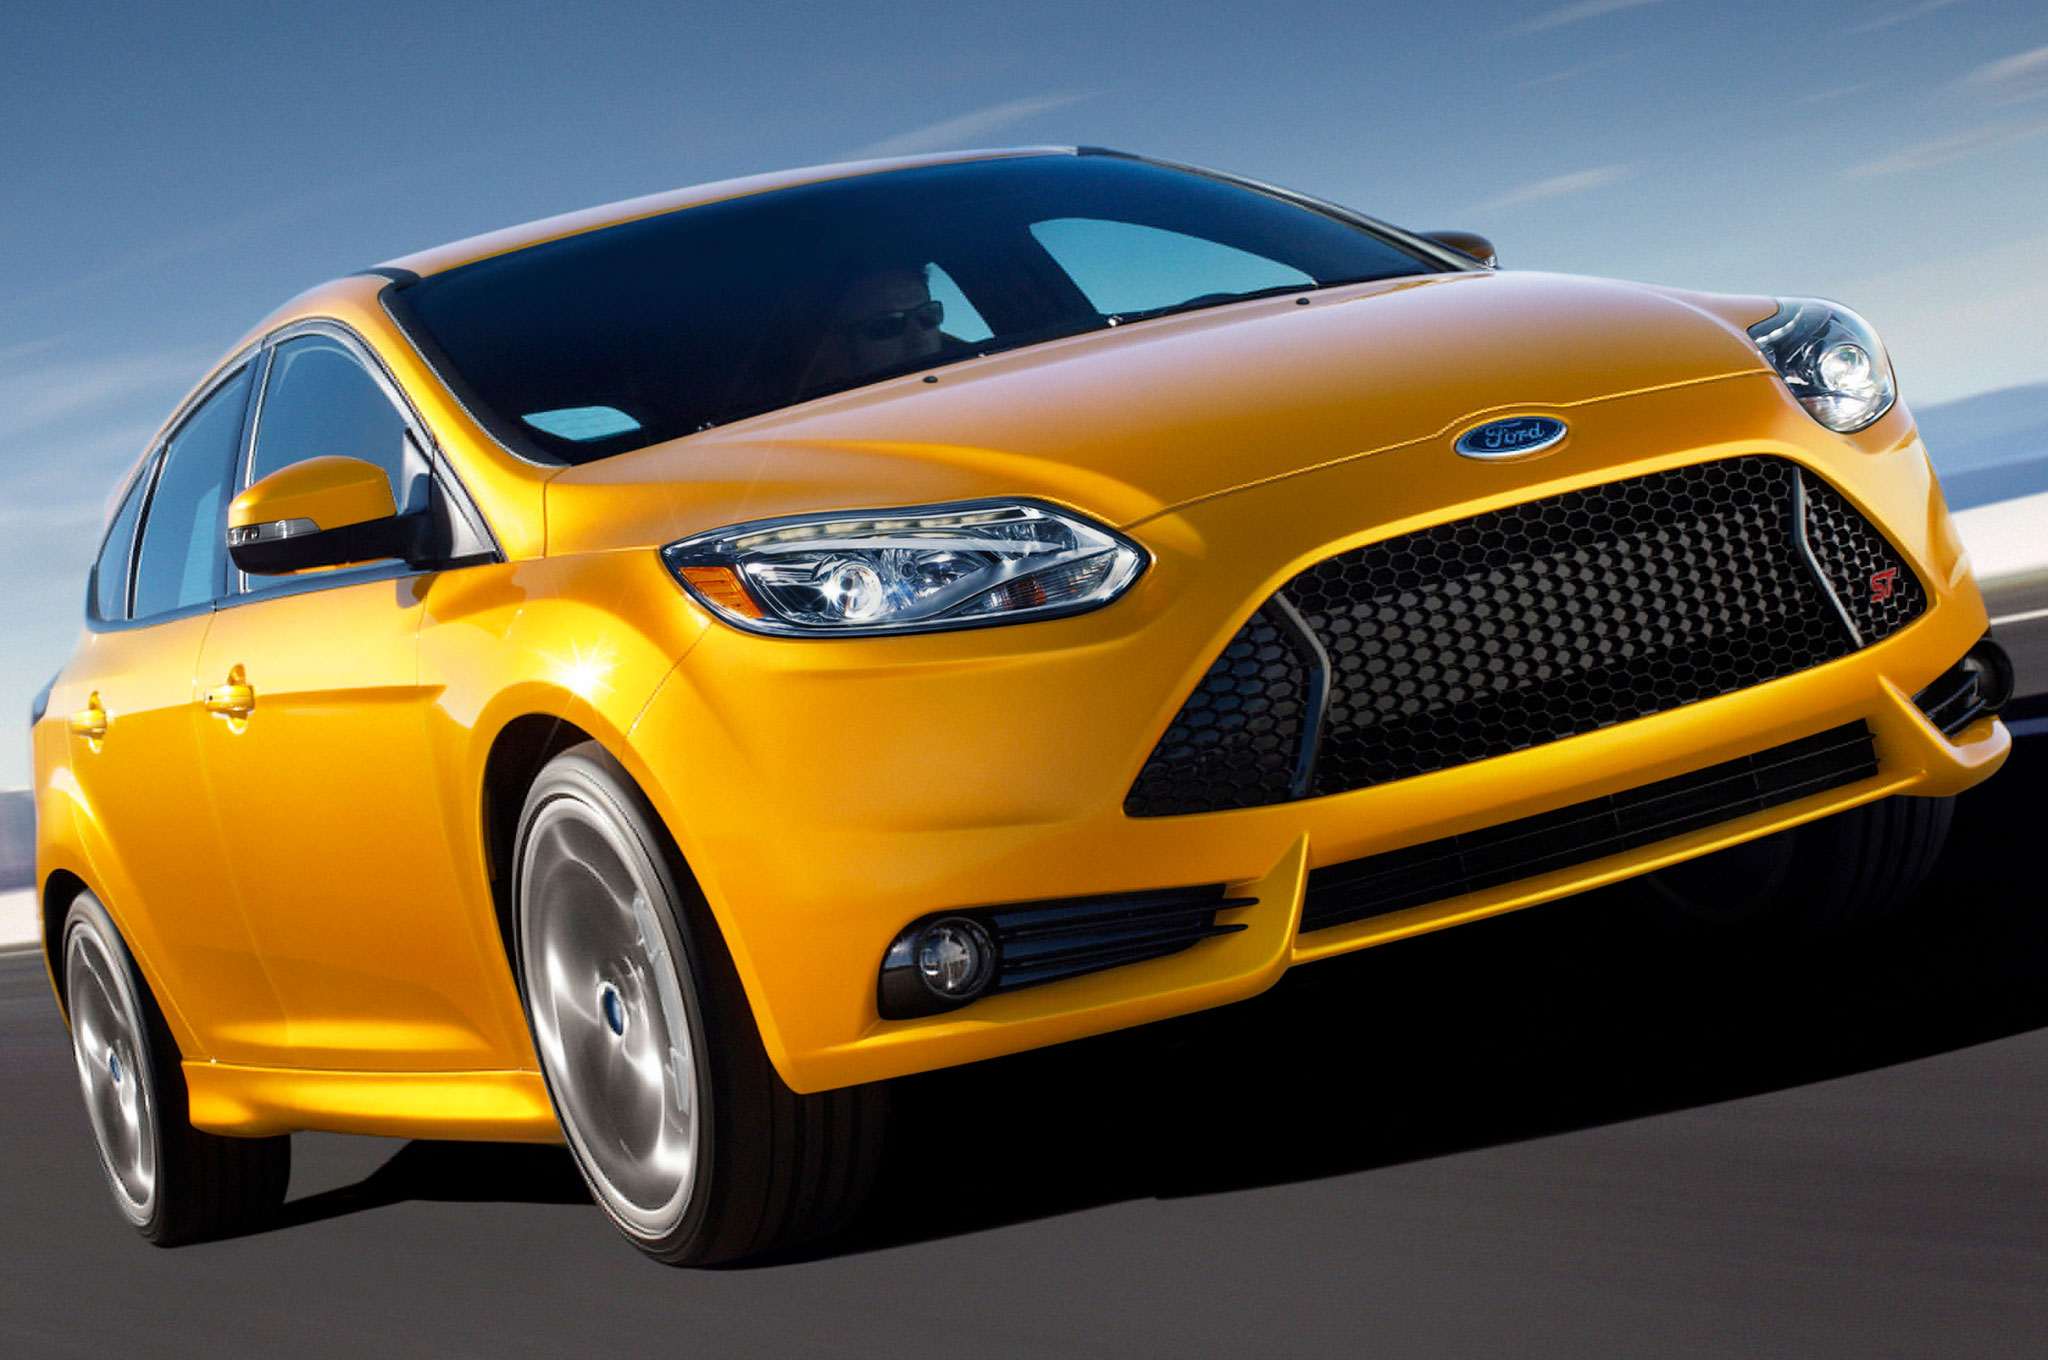 Recalled: 6308 Ford Focus STs, Focus EVs With HID Headlights